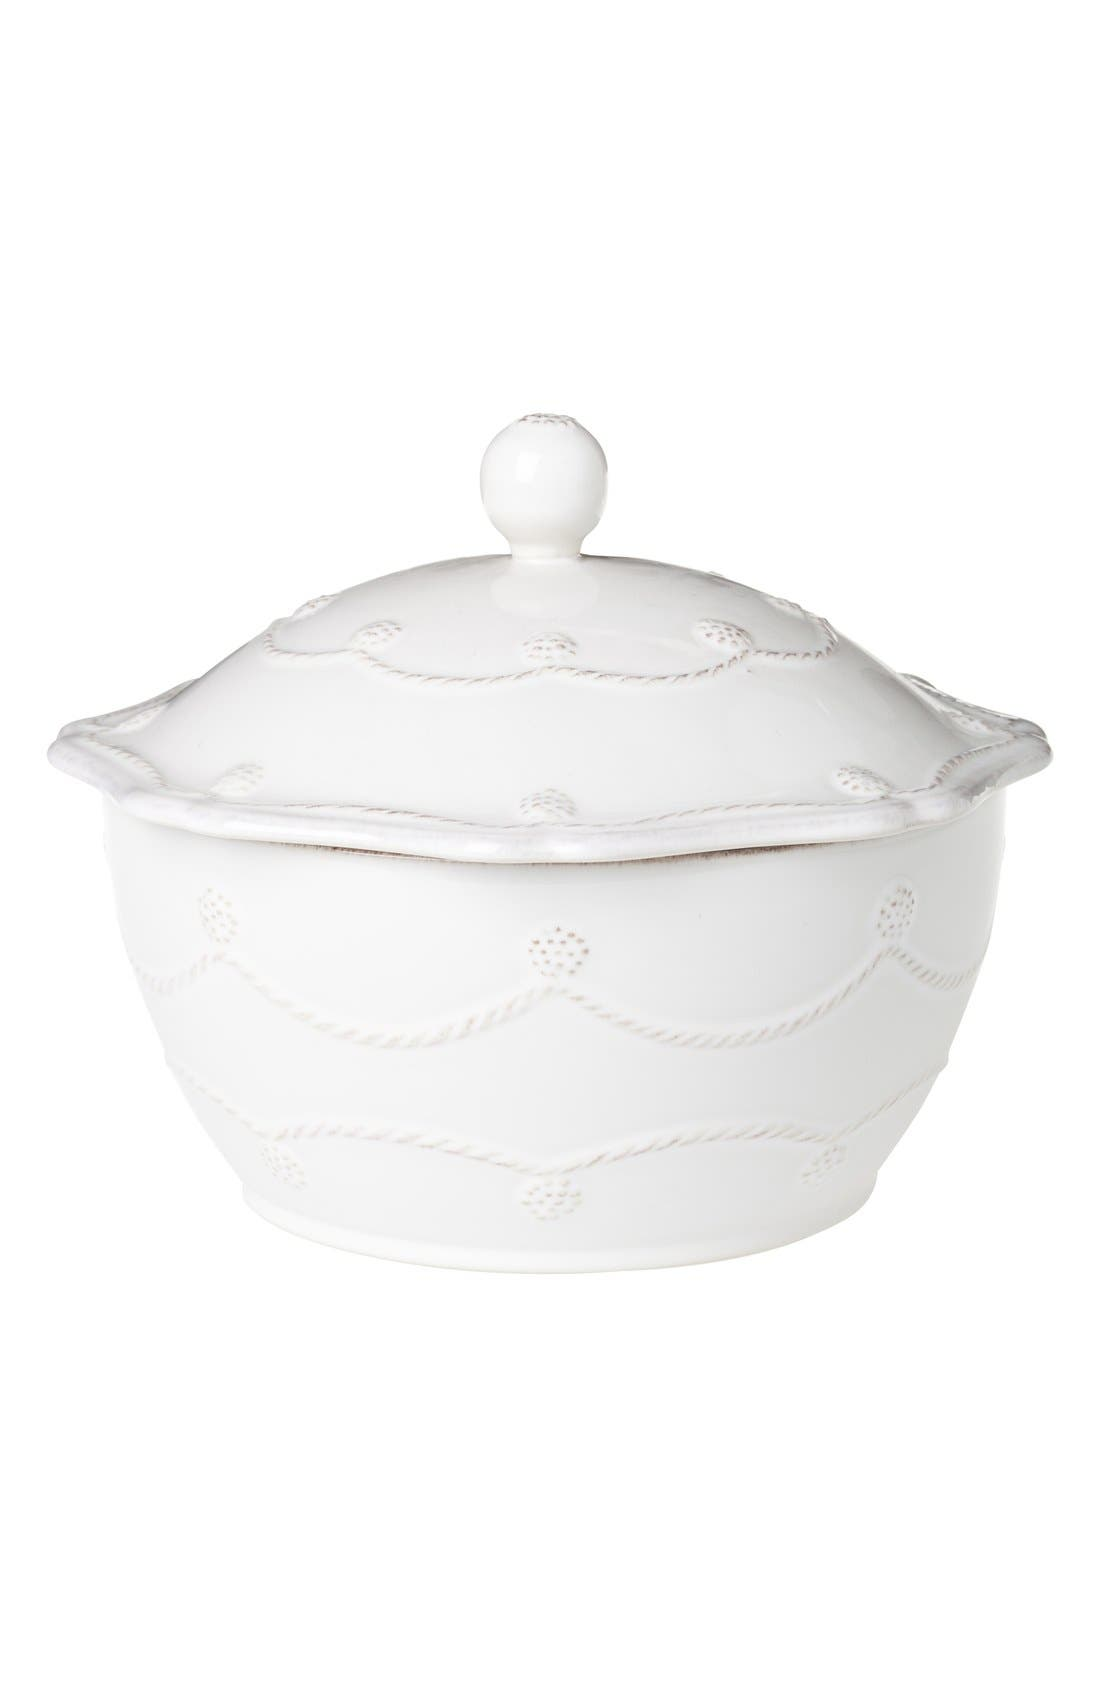 Alternate Image 1 Selected - Juliska'Berry and Thread' Casserole Dish with Lid